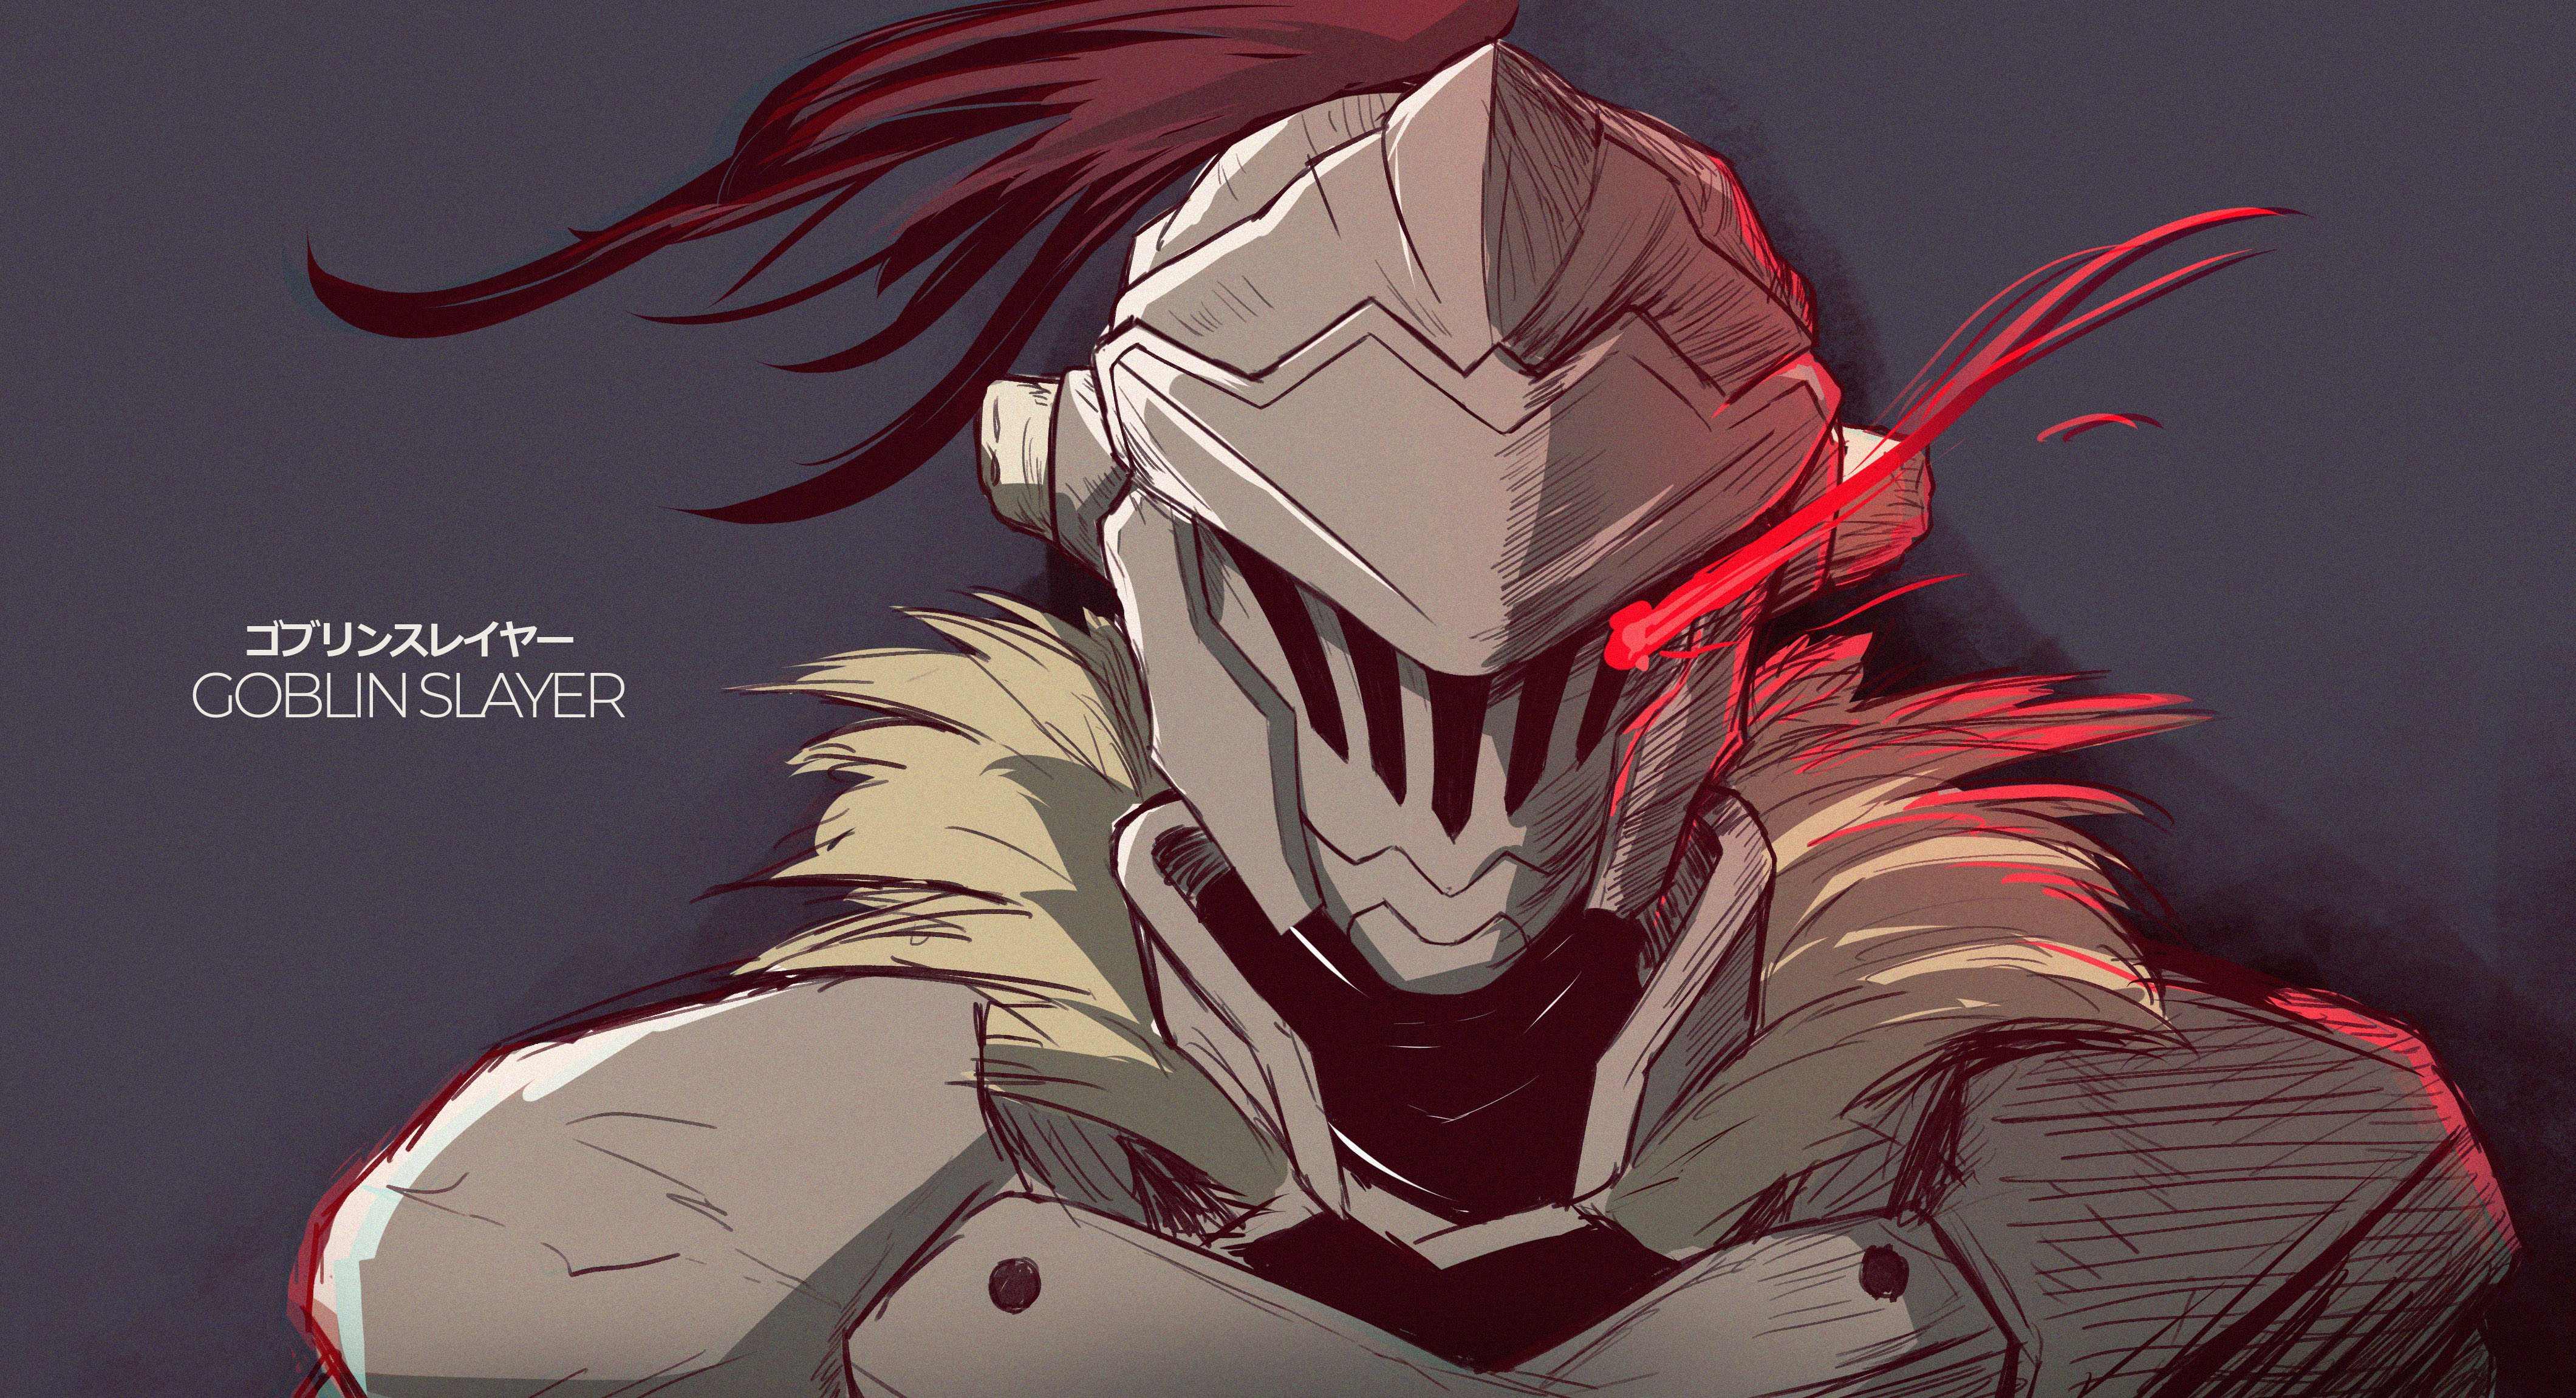 Goblin Slayer 4k Ultra Hd Wallpaper Background Image 4241x2302 Images, Photos, Reviews